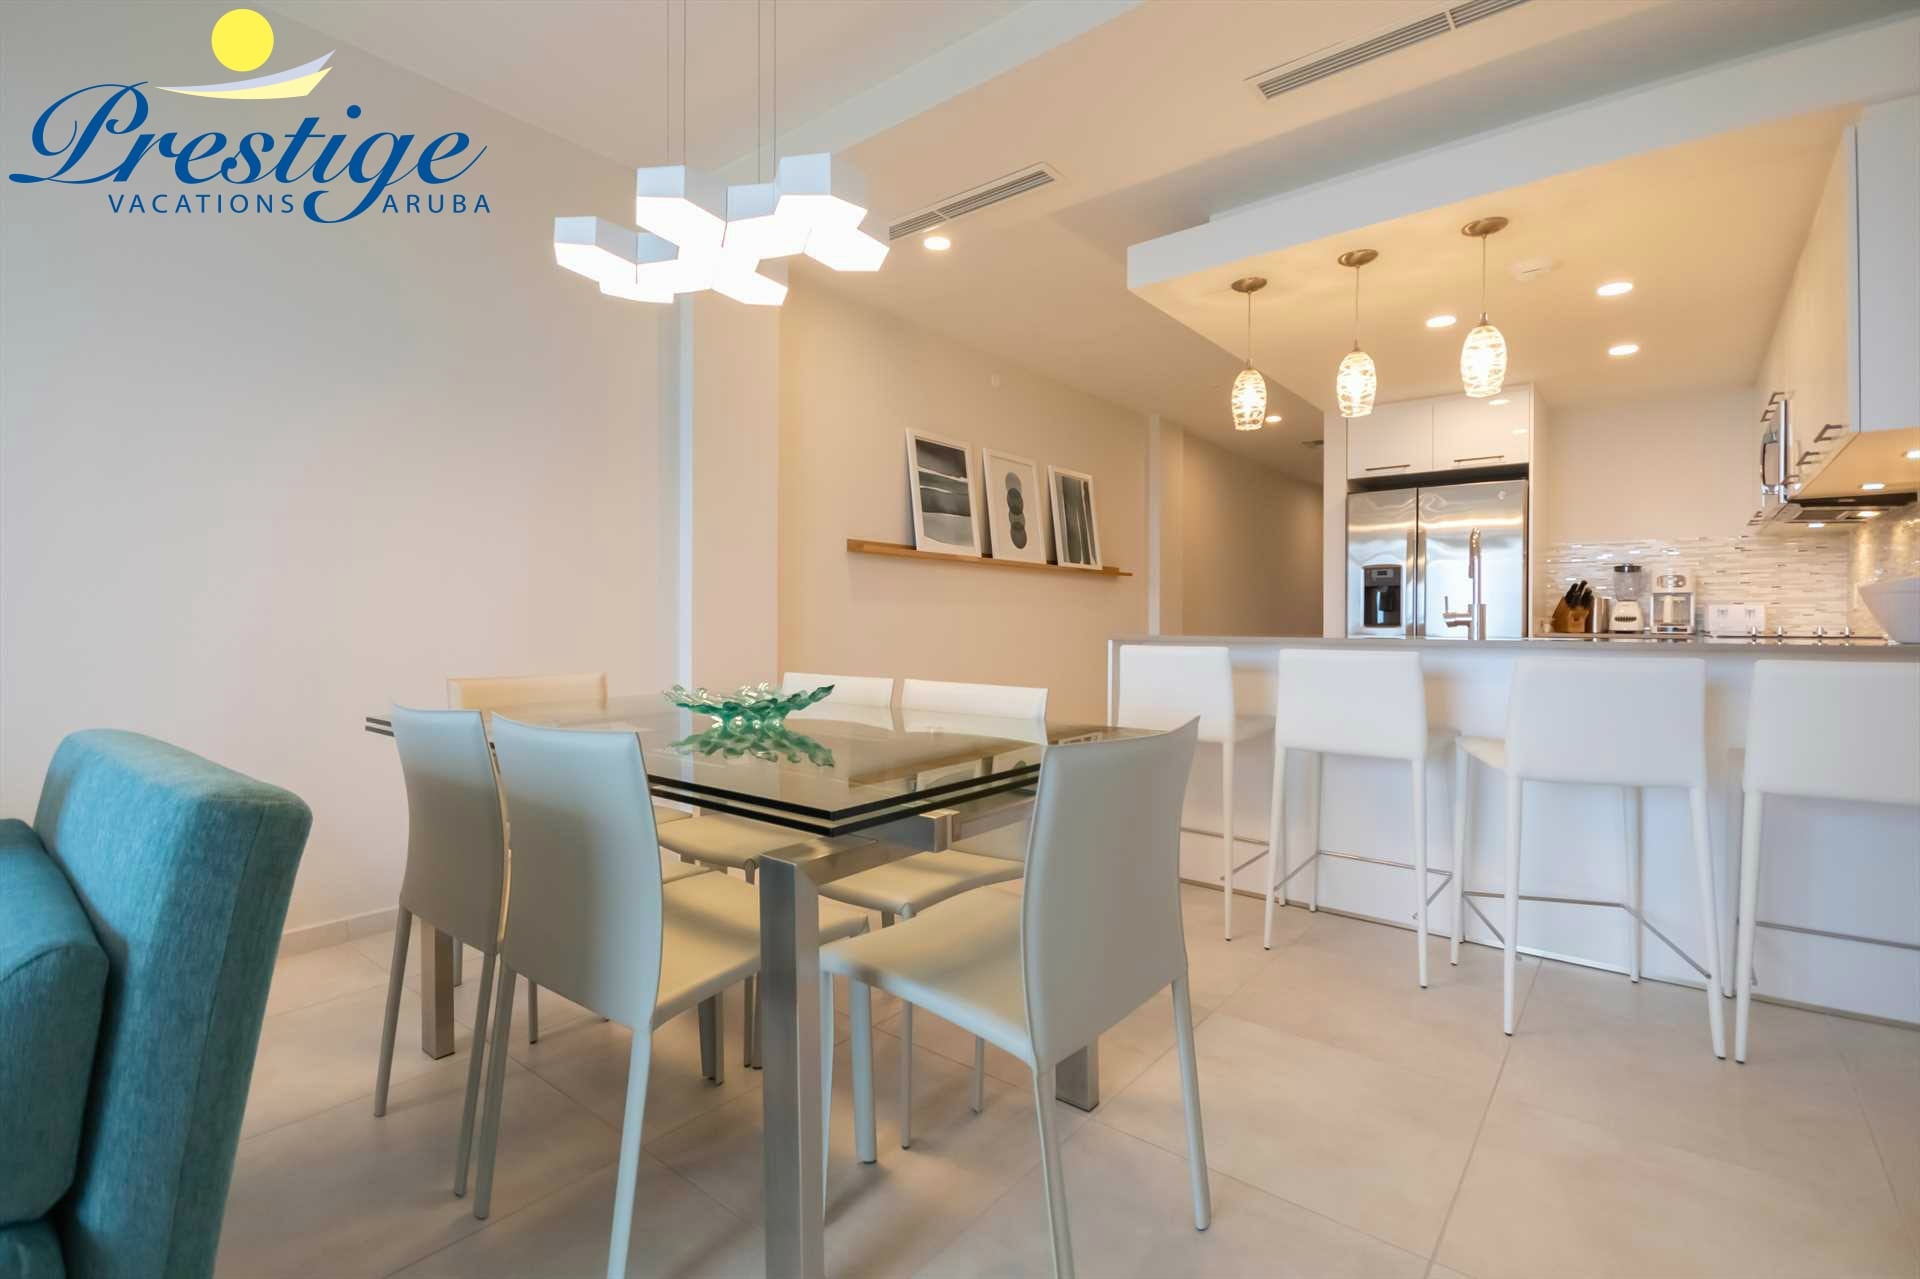 Living area with a 6-seat dining table and the kitchen